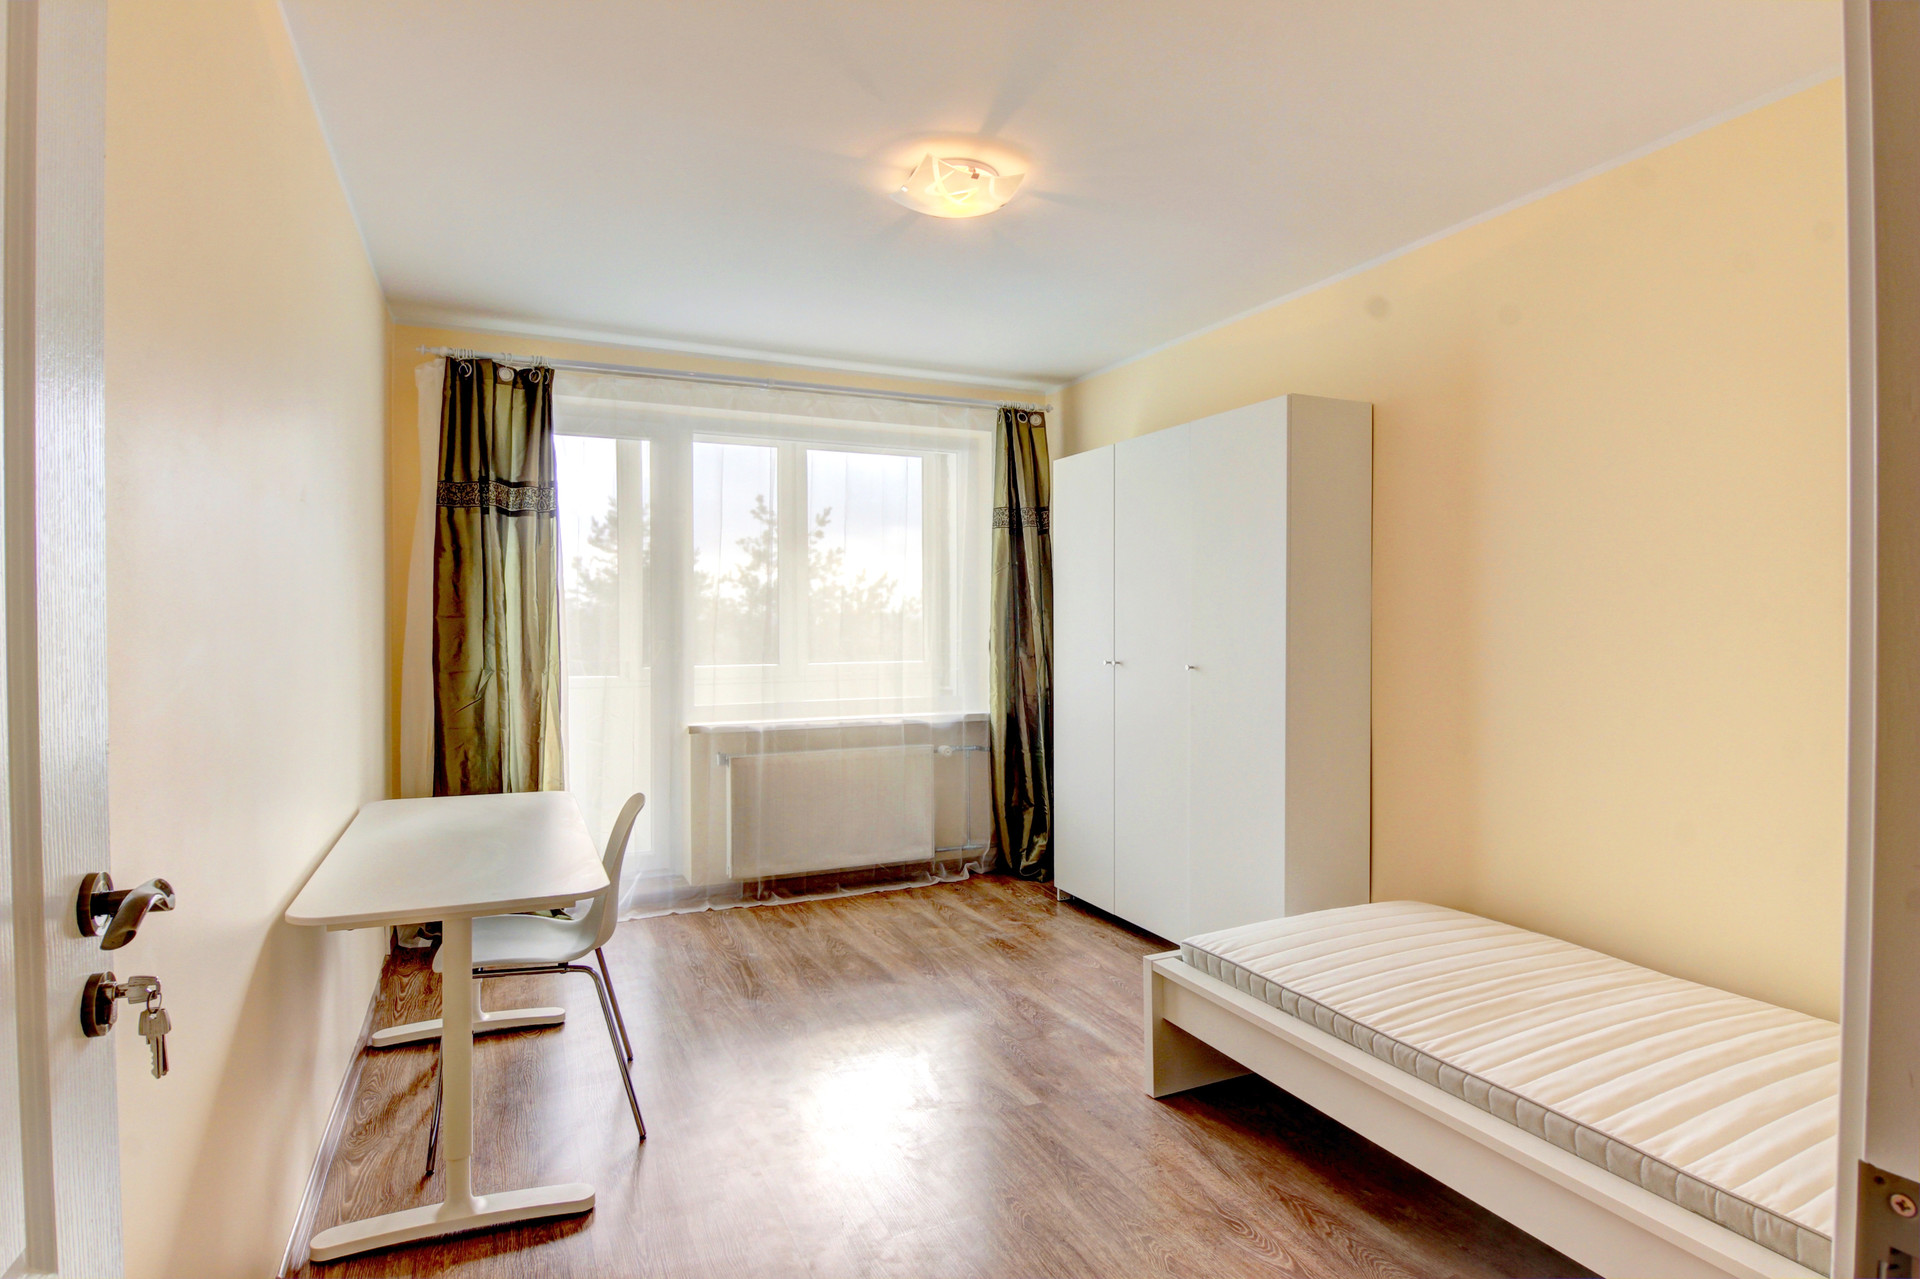 Snug room in 5-room apartment in Baltupiai area